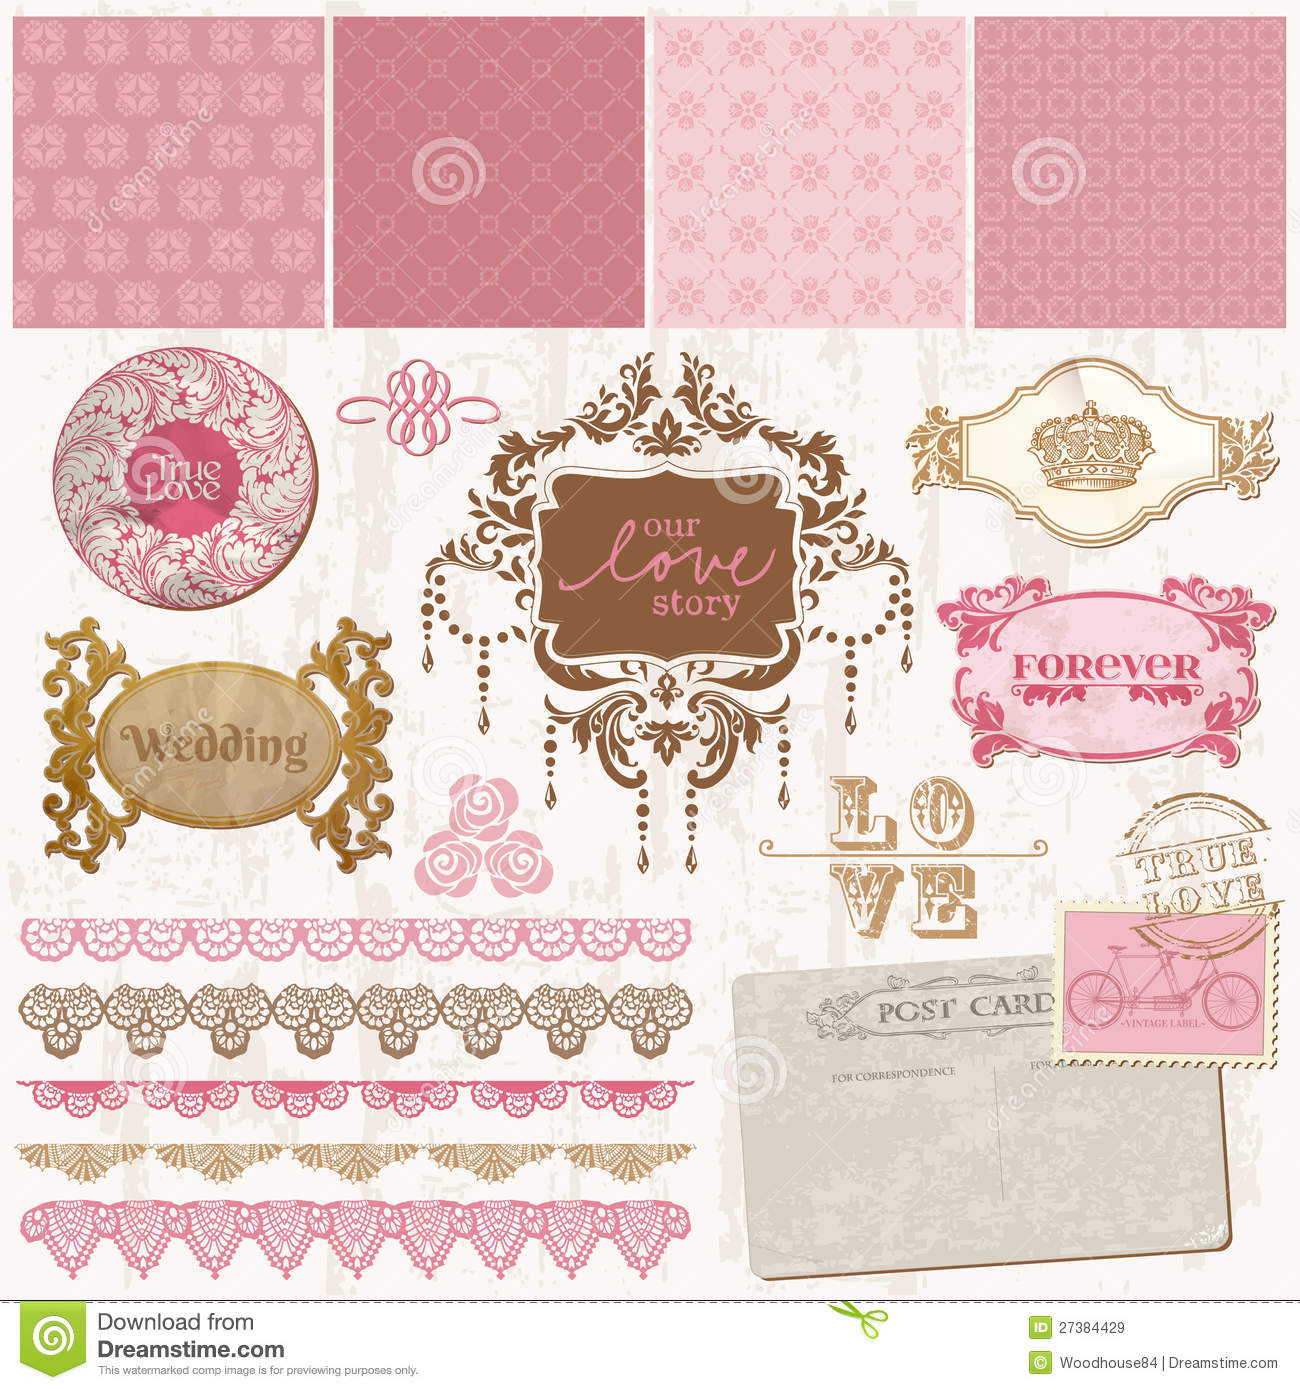 stock photos wedding scrapbook page 12 12 layout image wedding scrapbook Scrapbook design elements Vintage Wedding Set Royalty Free Stock Images